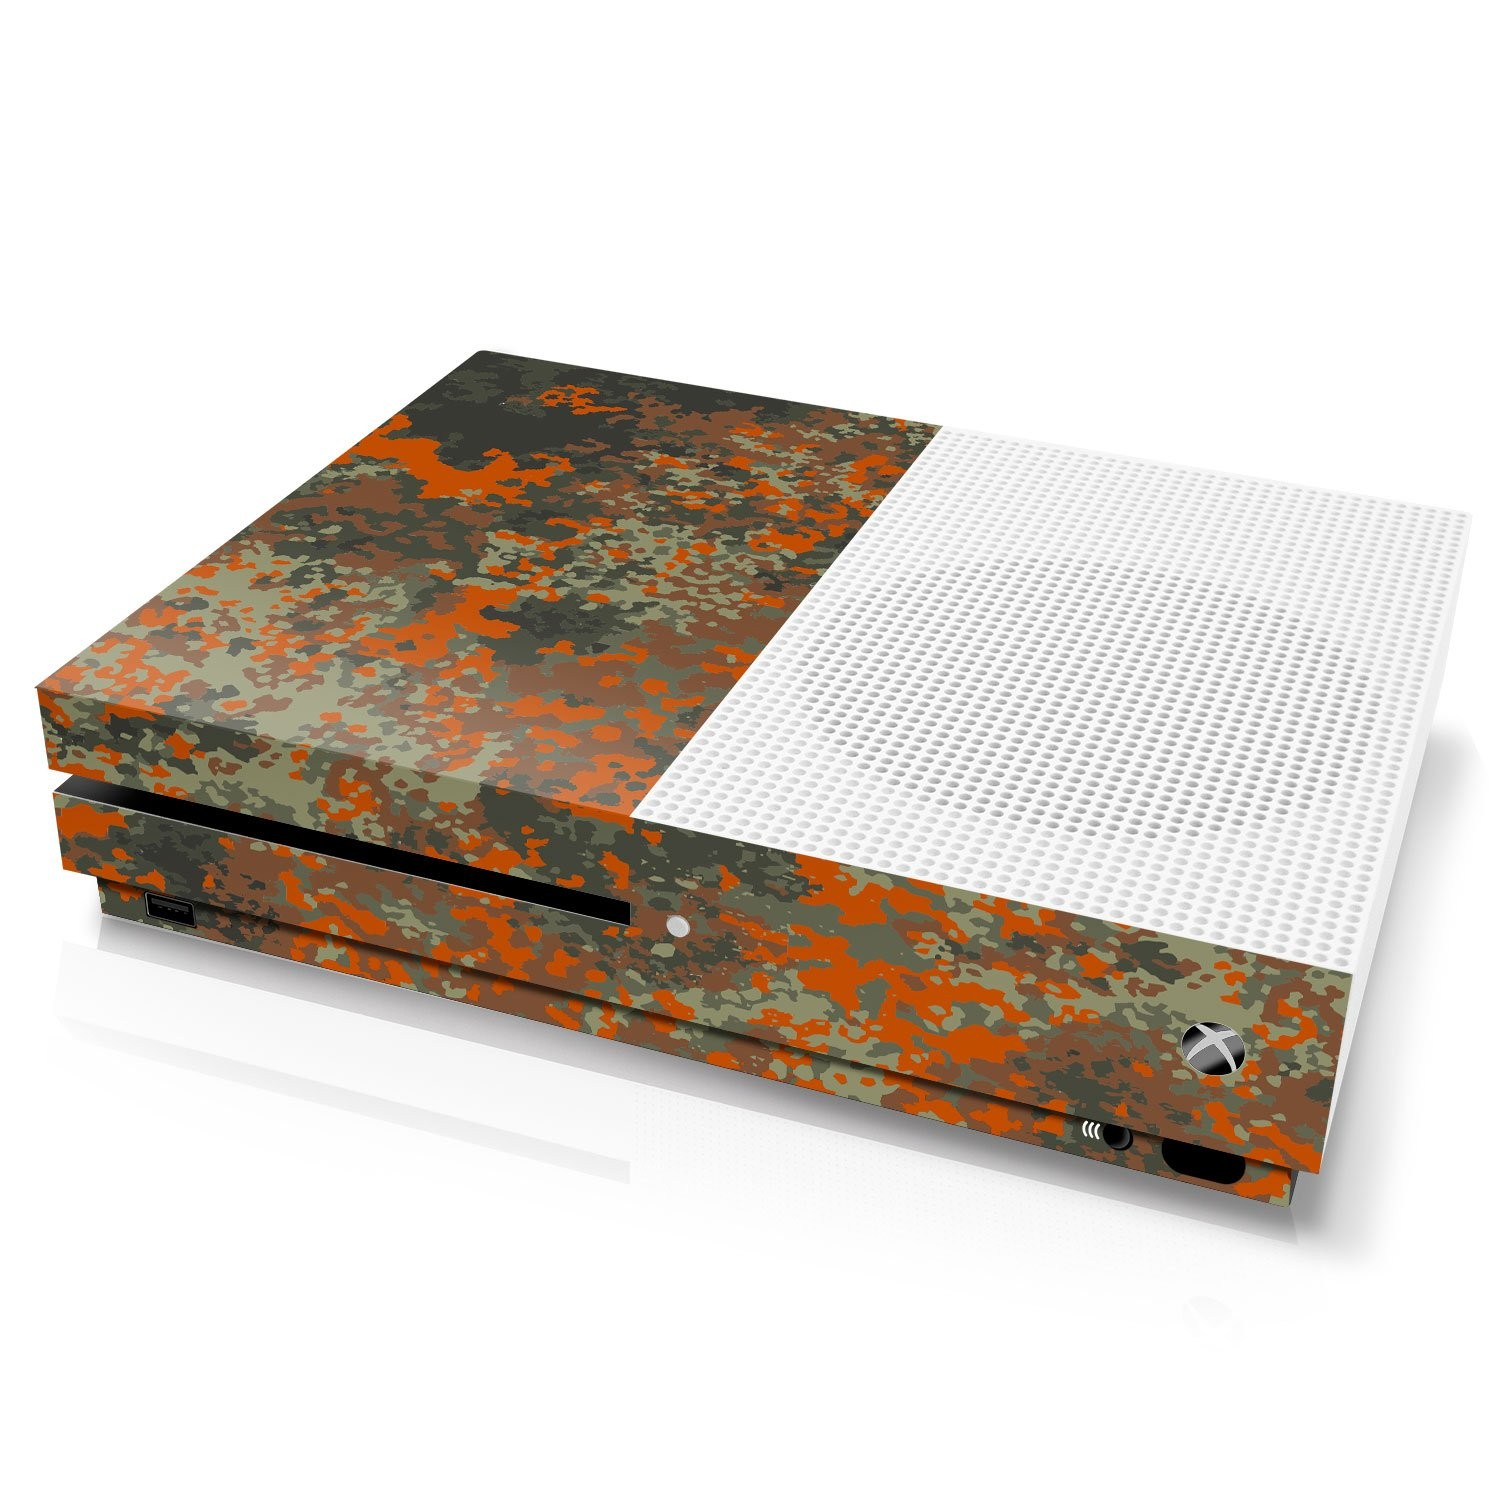 Xbox One S Console Skin - Camouflage: Flecktarn Splatter - Officially Licensed by Xbox